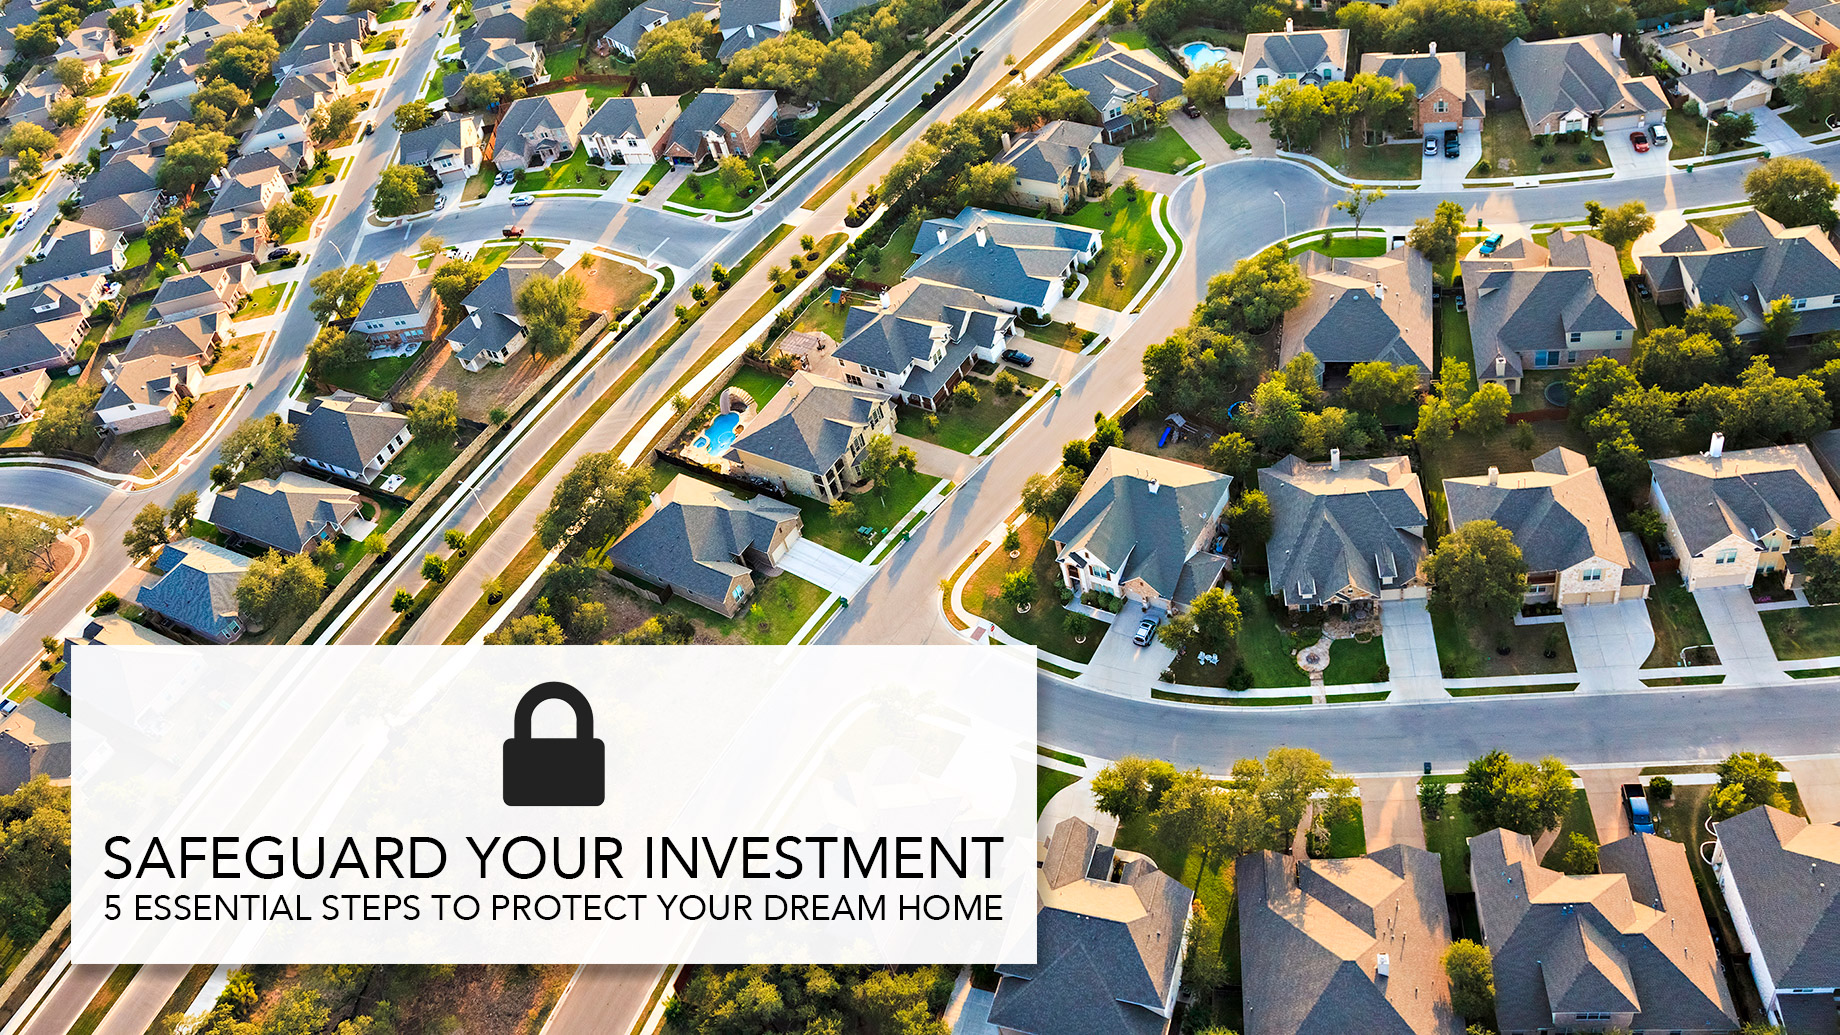 Safeguard Your Investment - 5 Essential Steps to Protect Your Dream Home